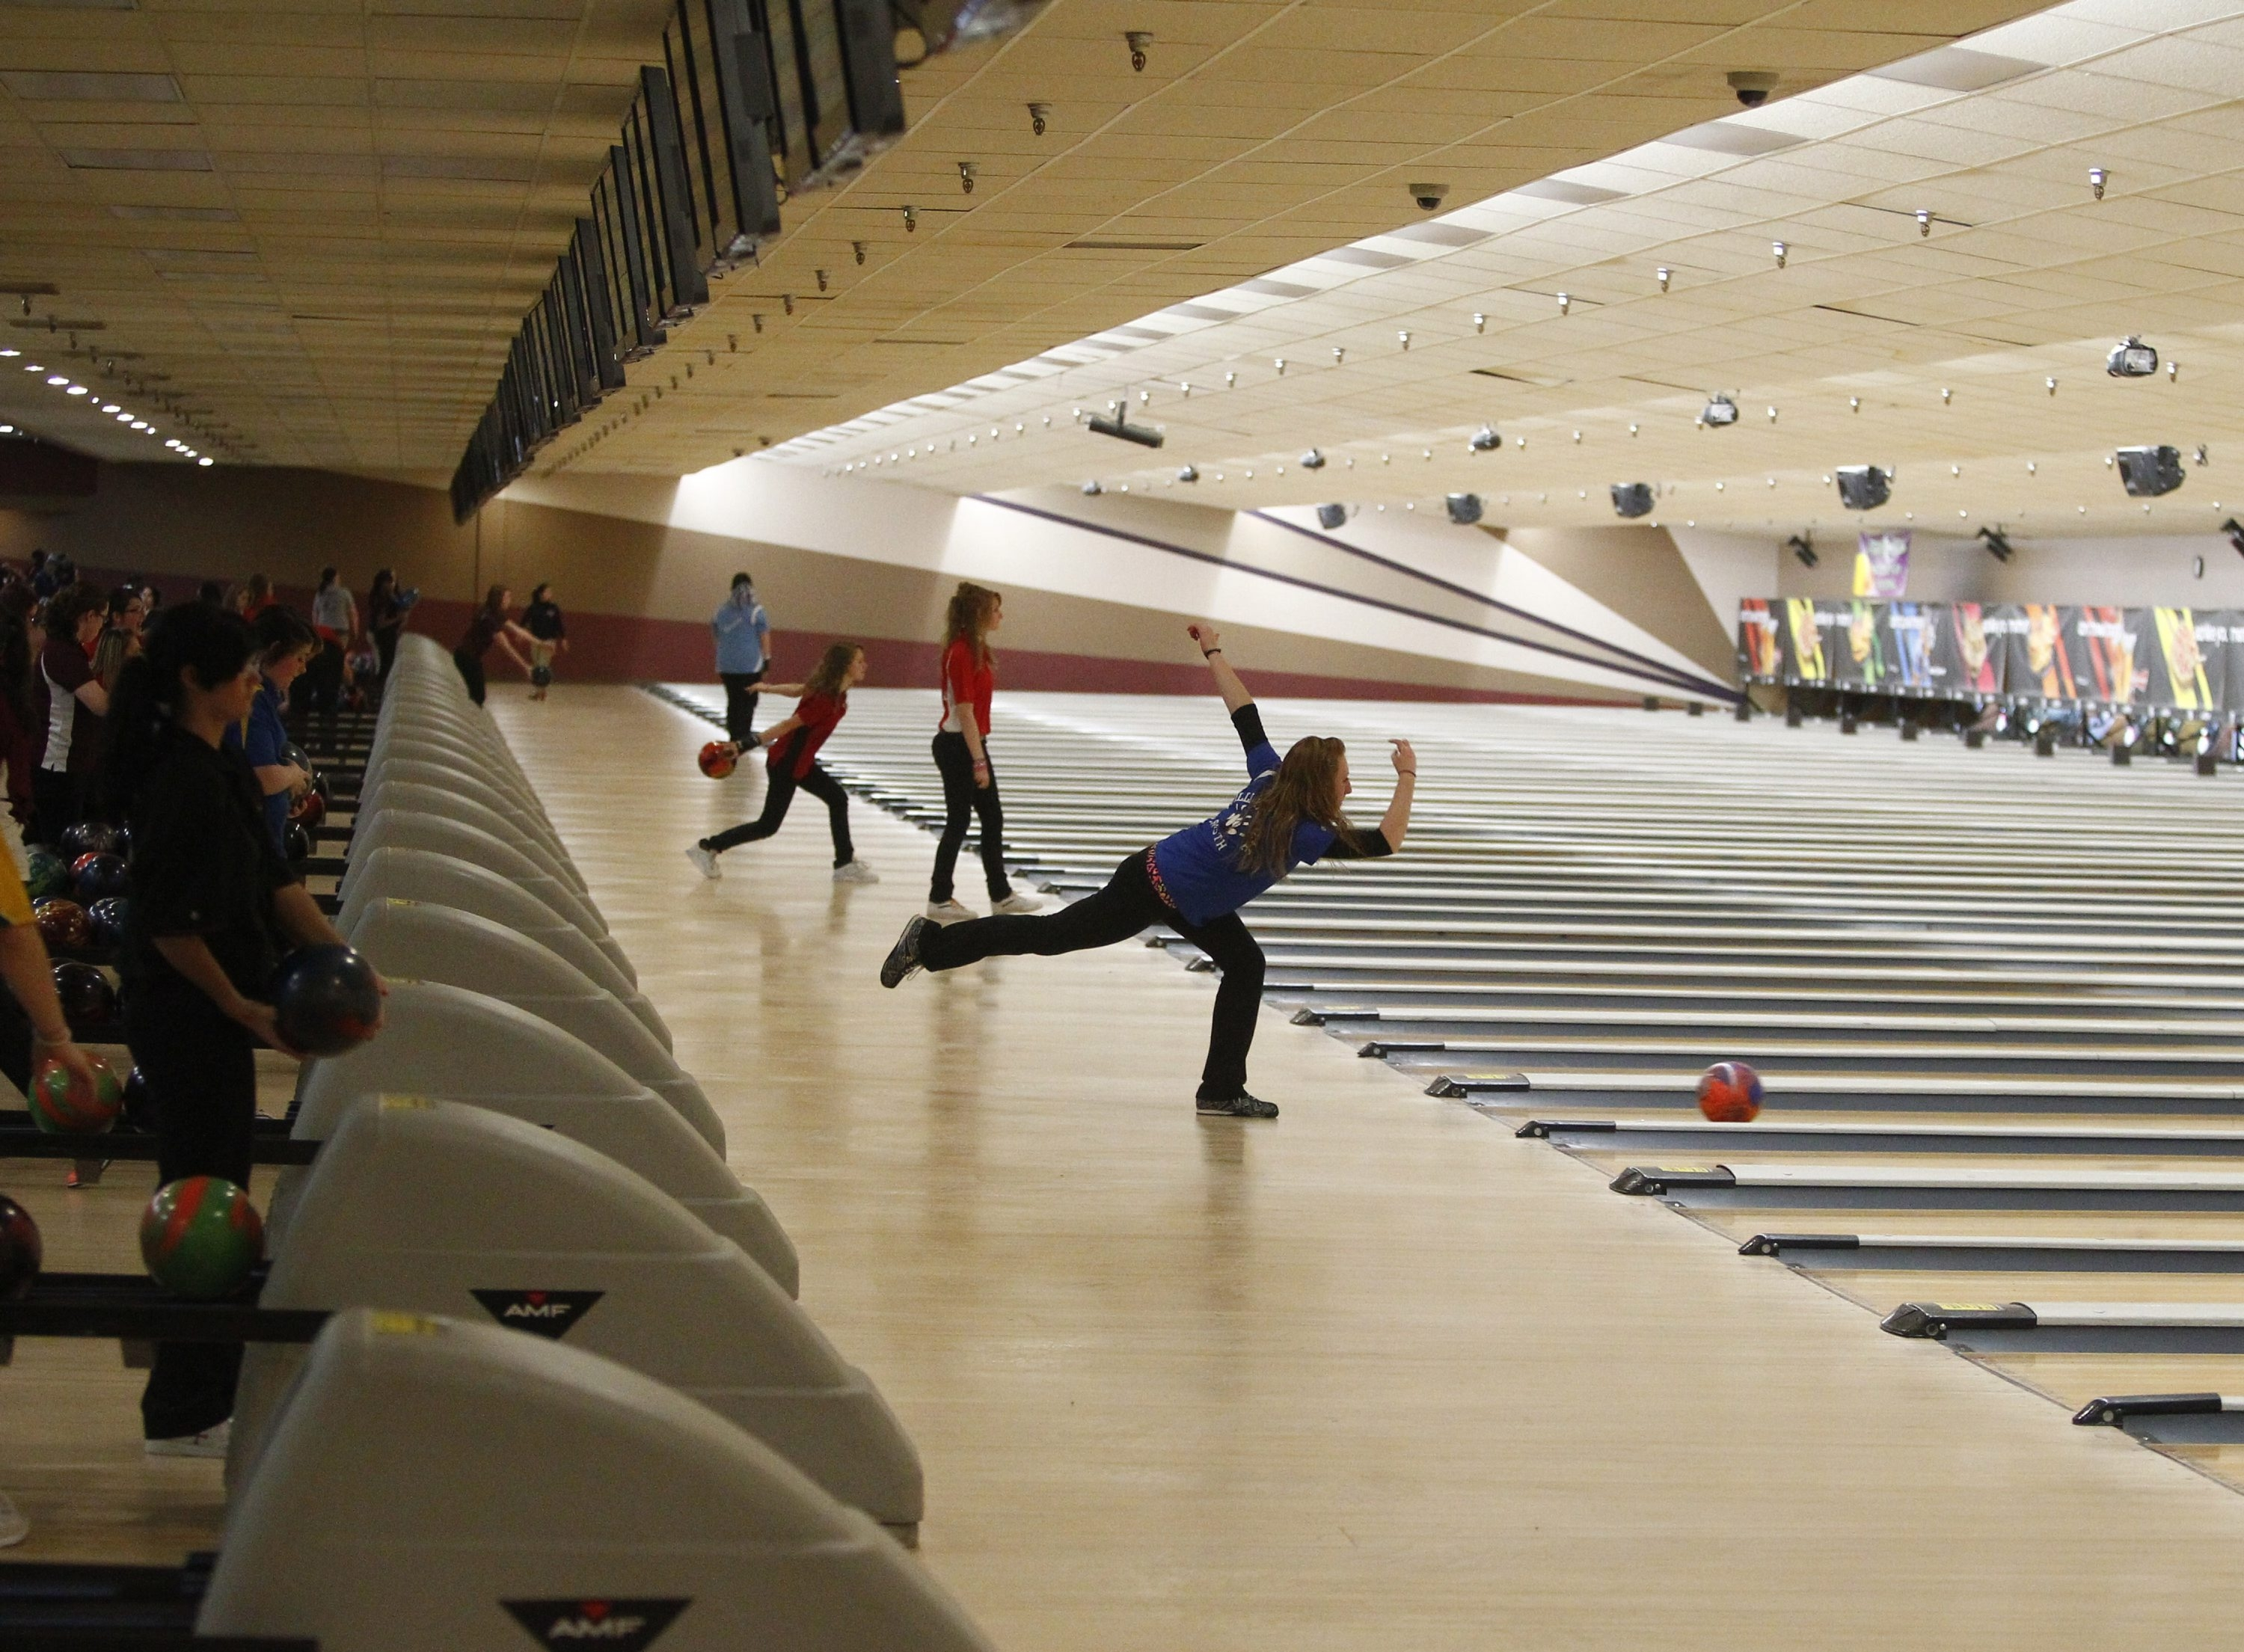 Teams compete in the Section VI Girls Bowling Championships at Thruway Lanes in 2012. John Hickey / News file photo